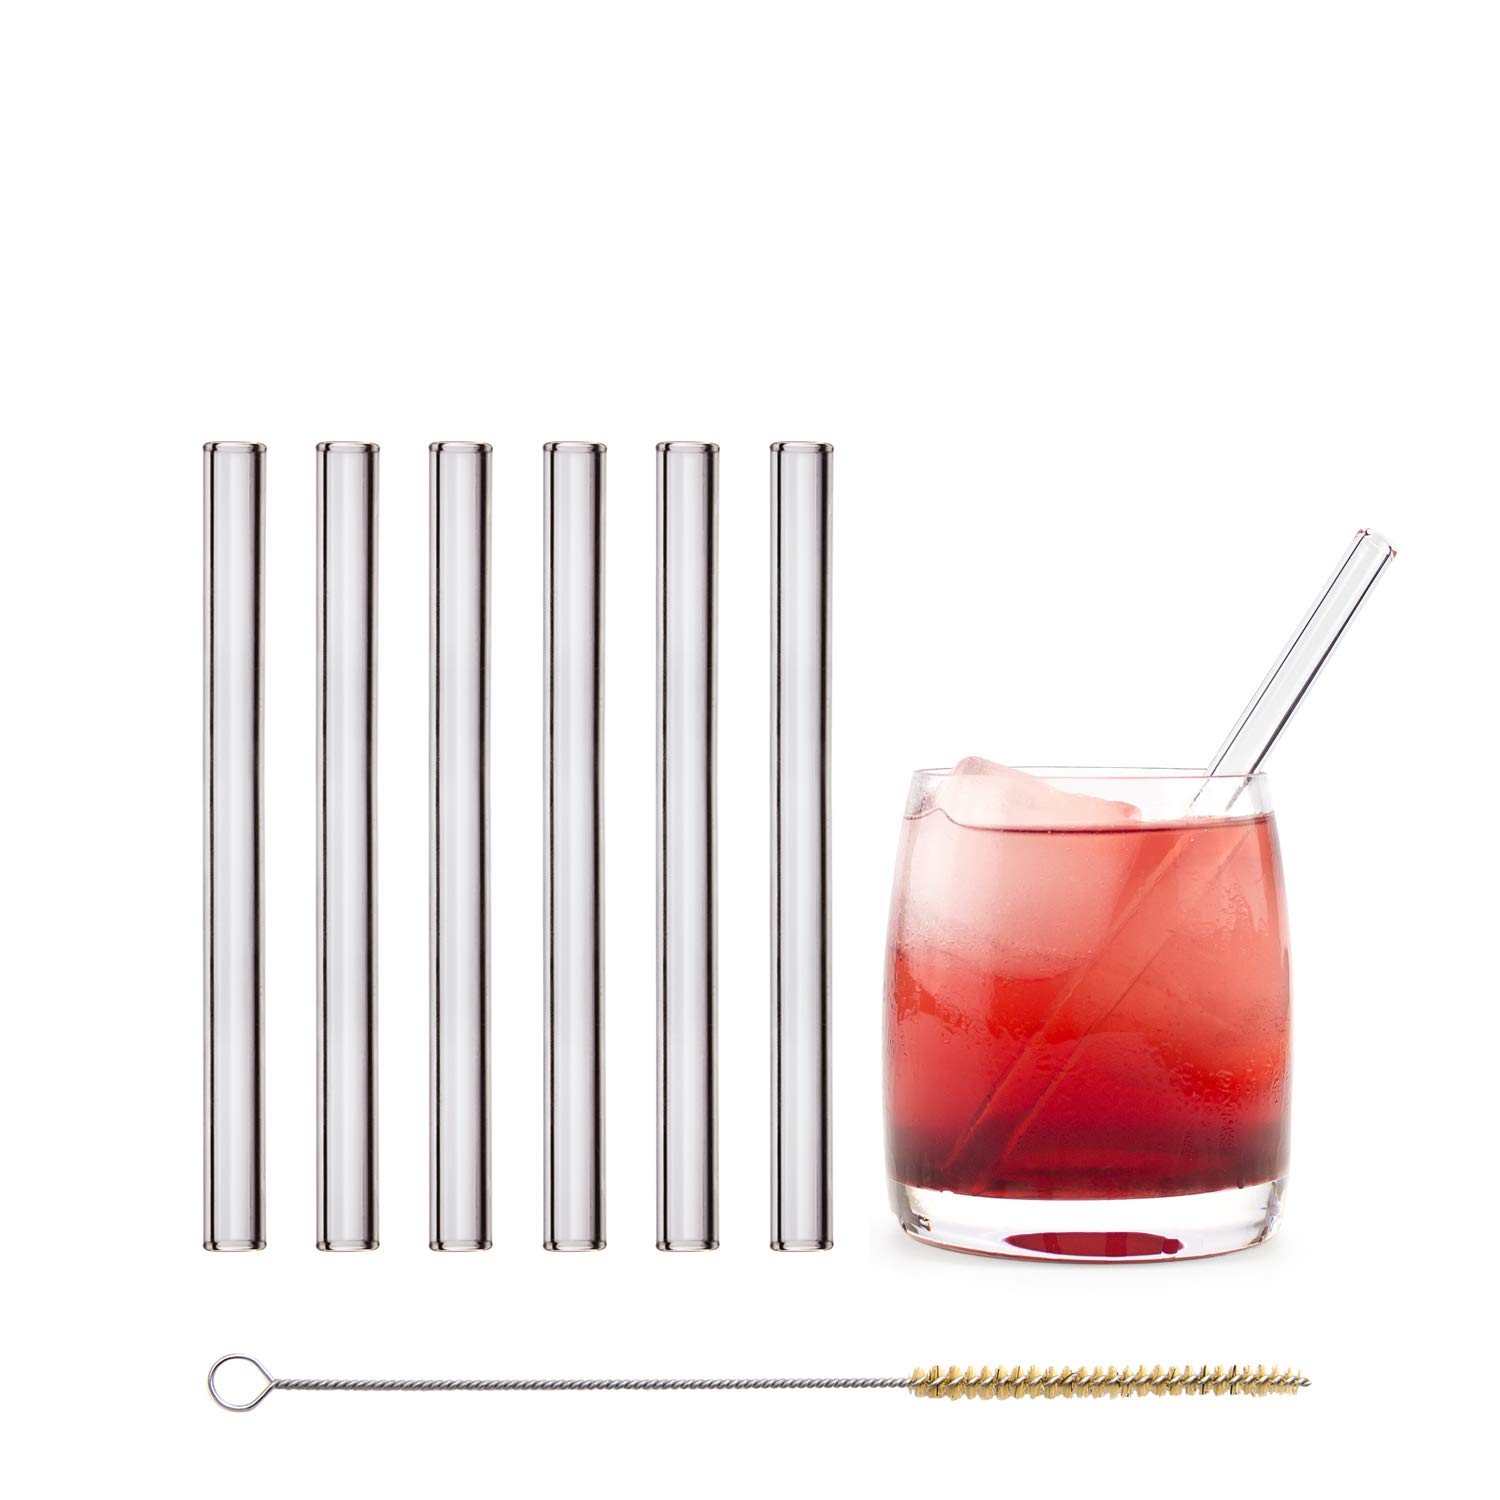 HALM  Glass Straws - 6 Reusable Drinking Straws + Plastic-Free Cleaning Brush - Made in Germany - Dishwasher Safe - Eco-Friendly - 15 cm (6 in) x 0.9 cm - Straight - Perfect for Smoothies, Cocktails